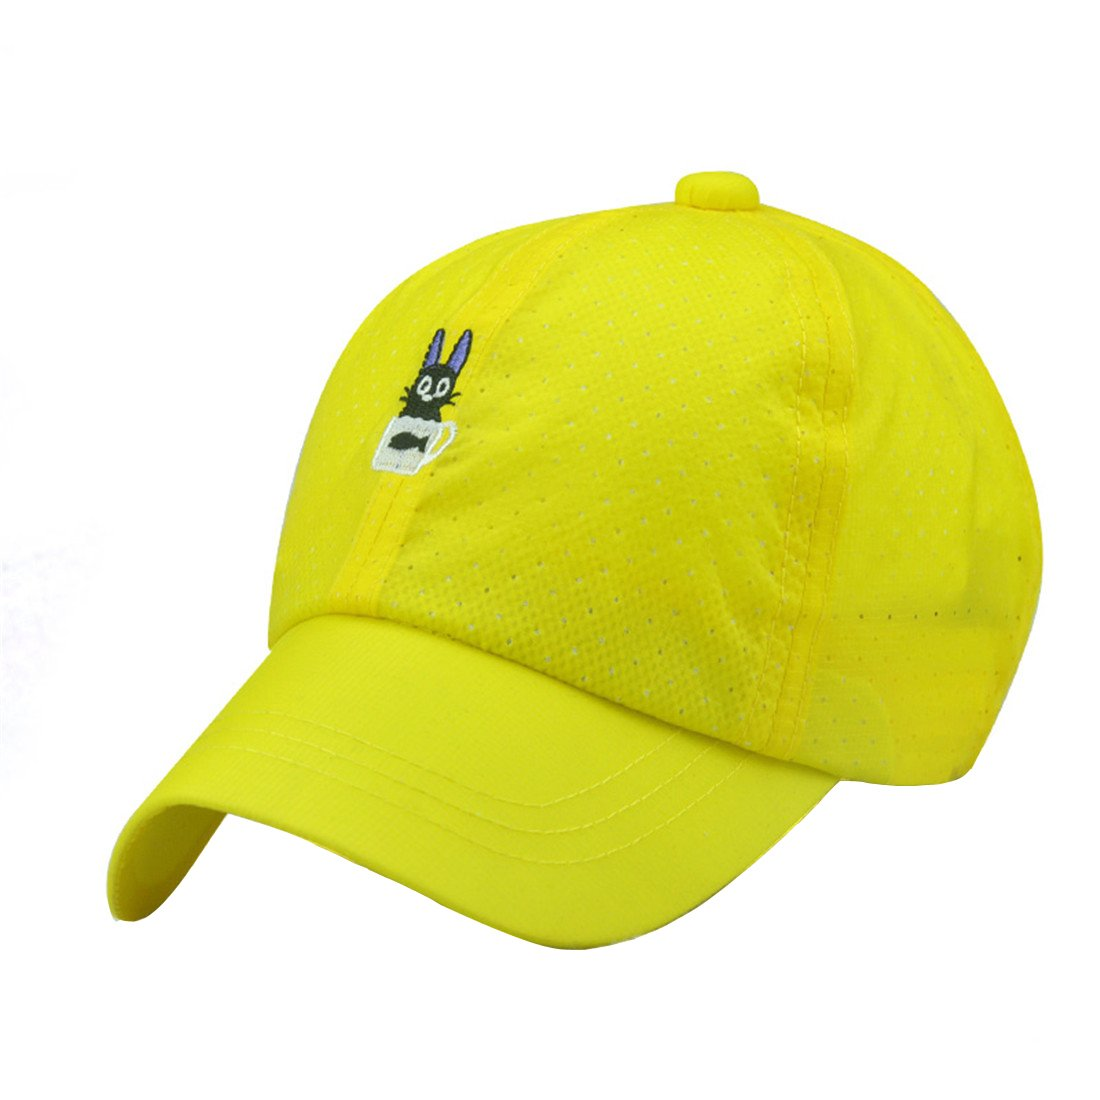 ACVIP Little Boy Girl Summer Cat Embroidery Solid Sun Protection Baseball Hat